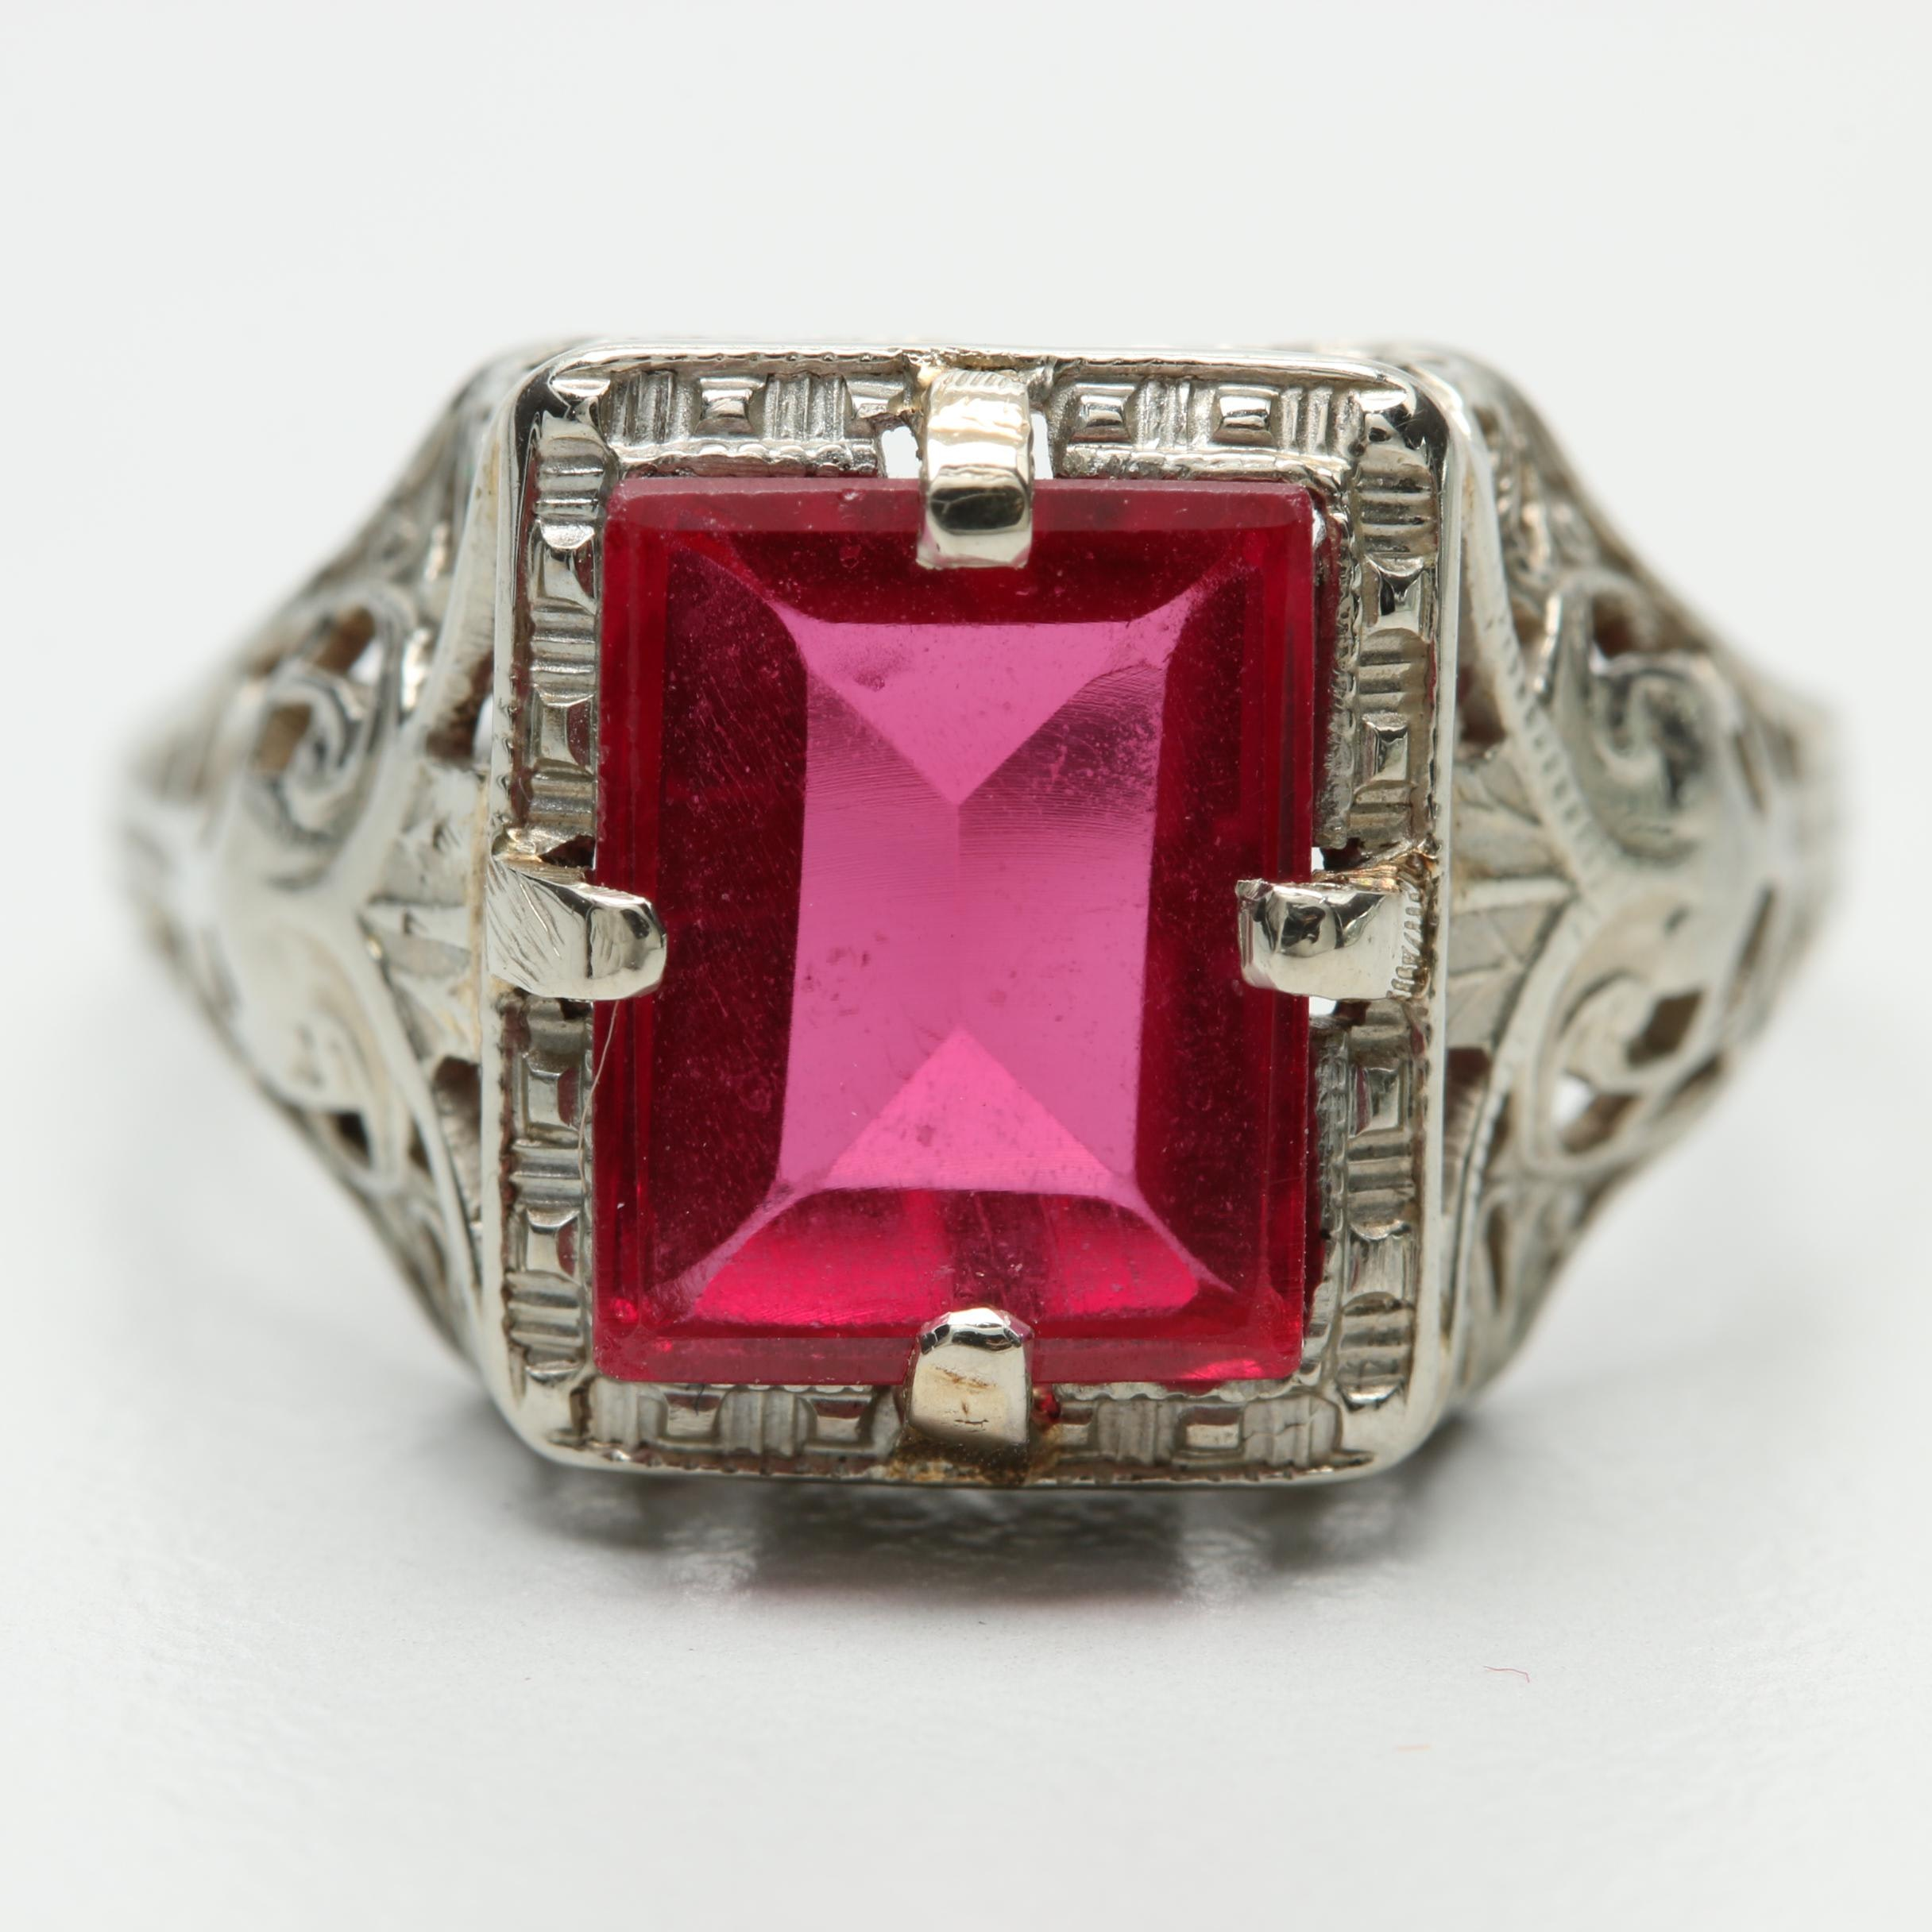 Early Art Deco 14K White Gold Synthetic Ruby Solitaire Ring